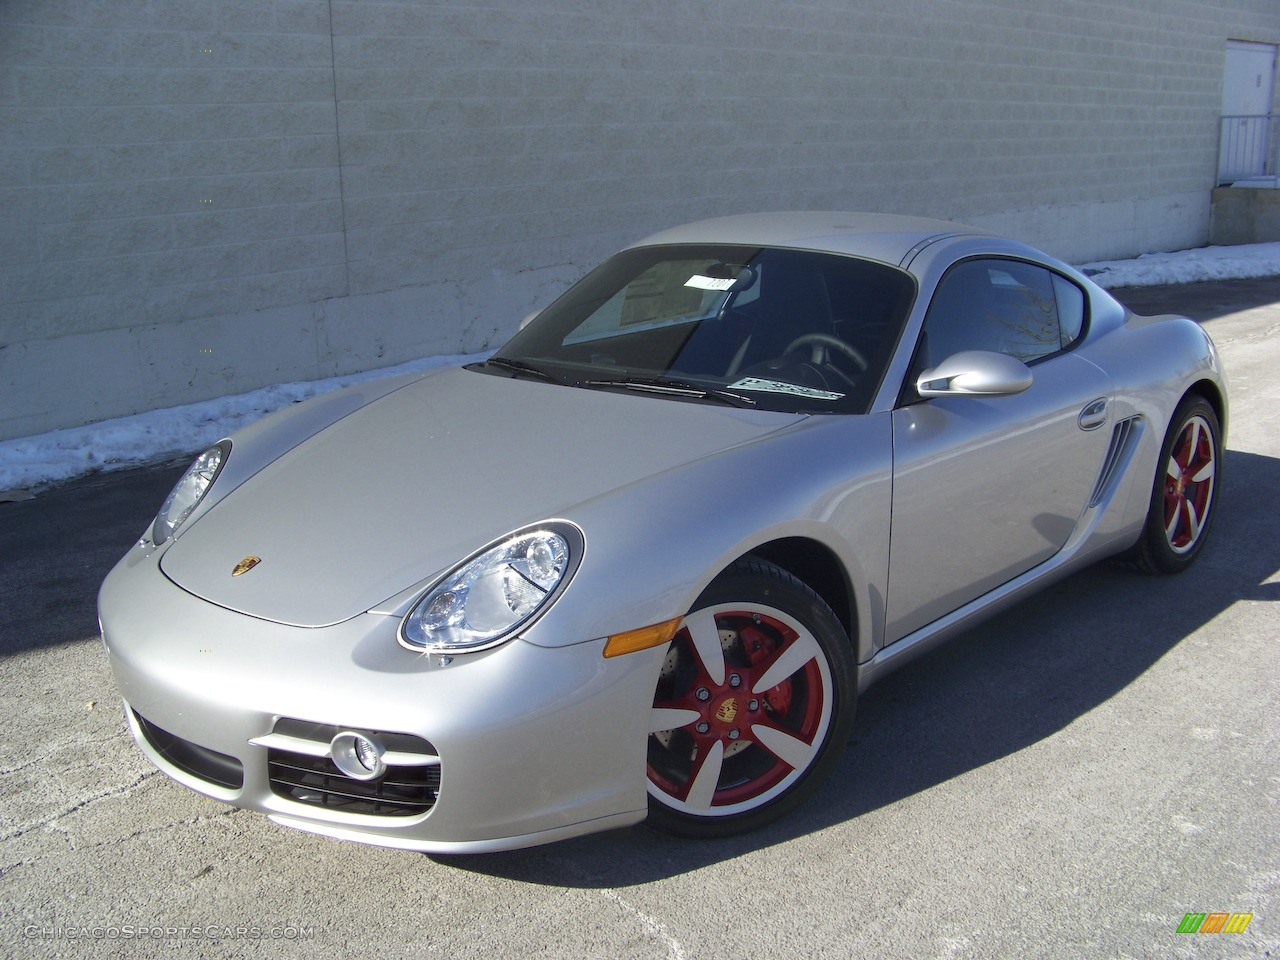 2009 porsche cayman s in arctic silver metallic photo 3 uxxxxx cars. Black Bedroom Furniture Sets. Home Design Ideas